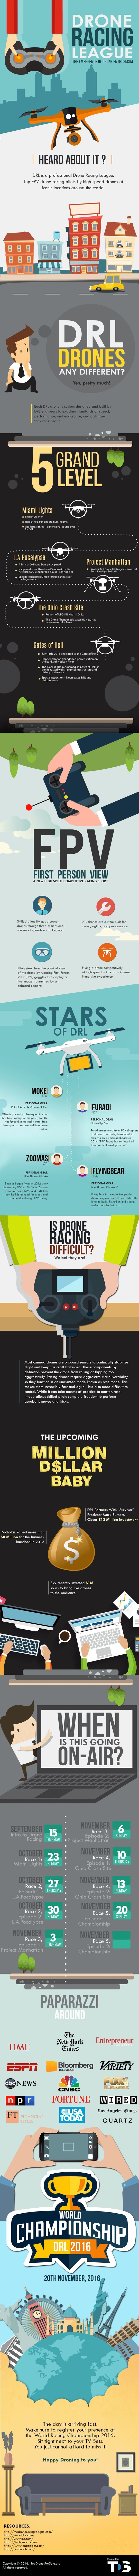 53 best Drone Stuff images on Pinterest | Drones, Fishing and Fpv ...